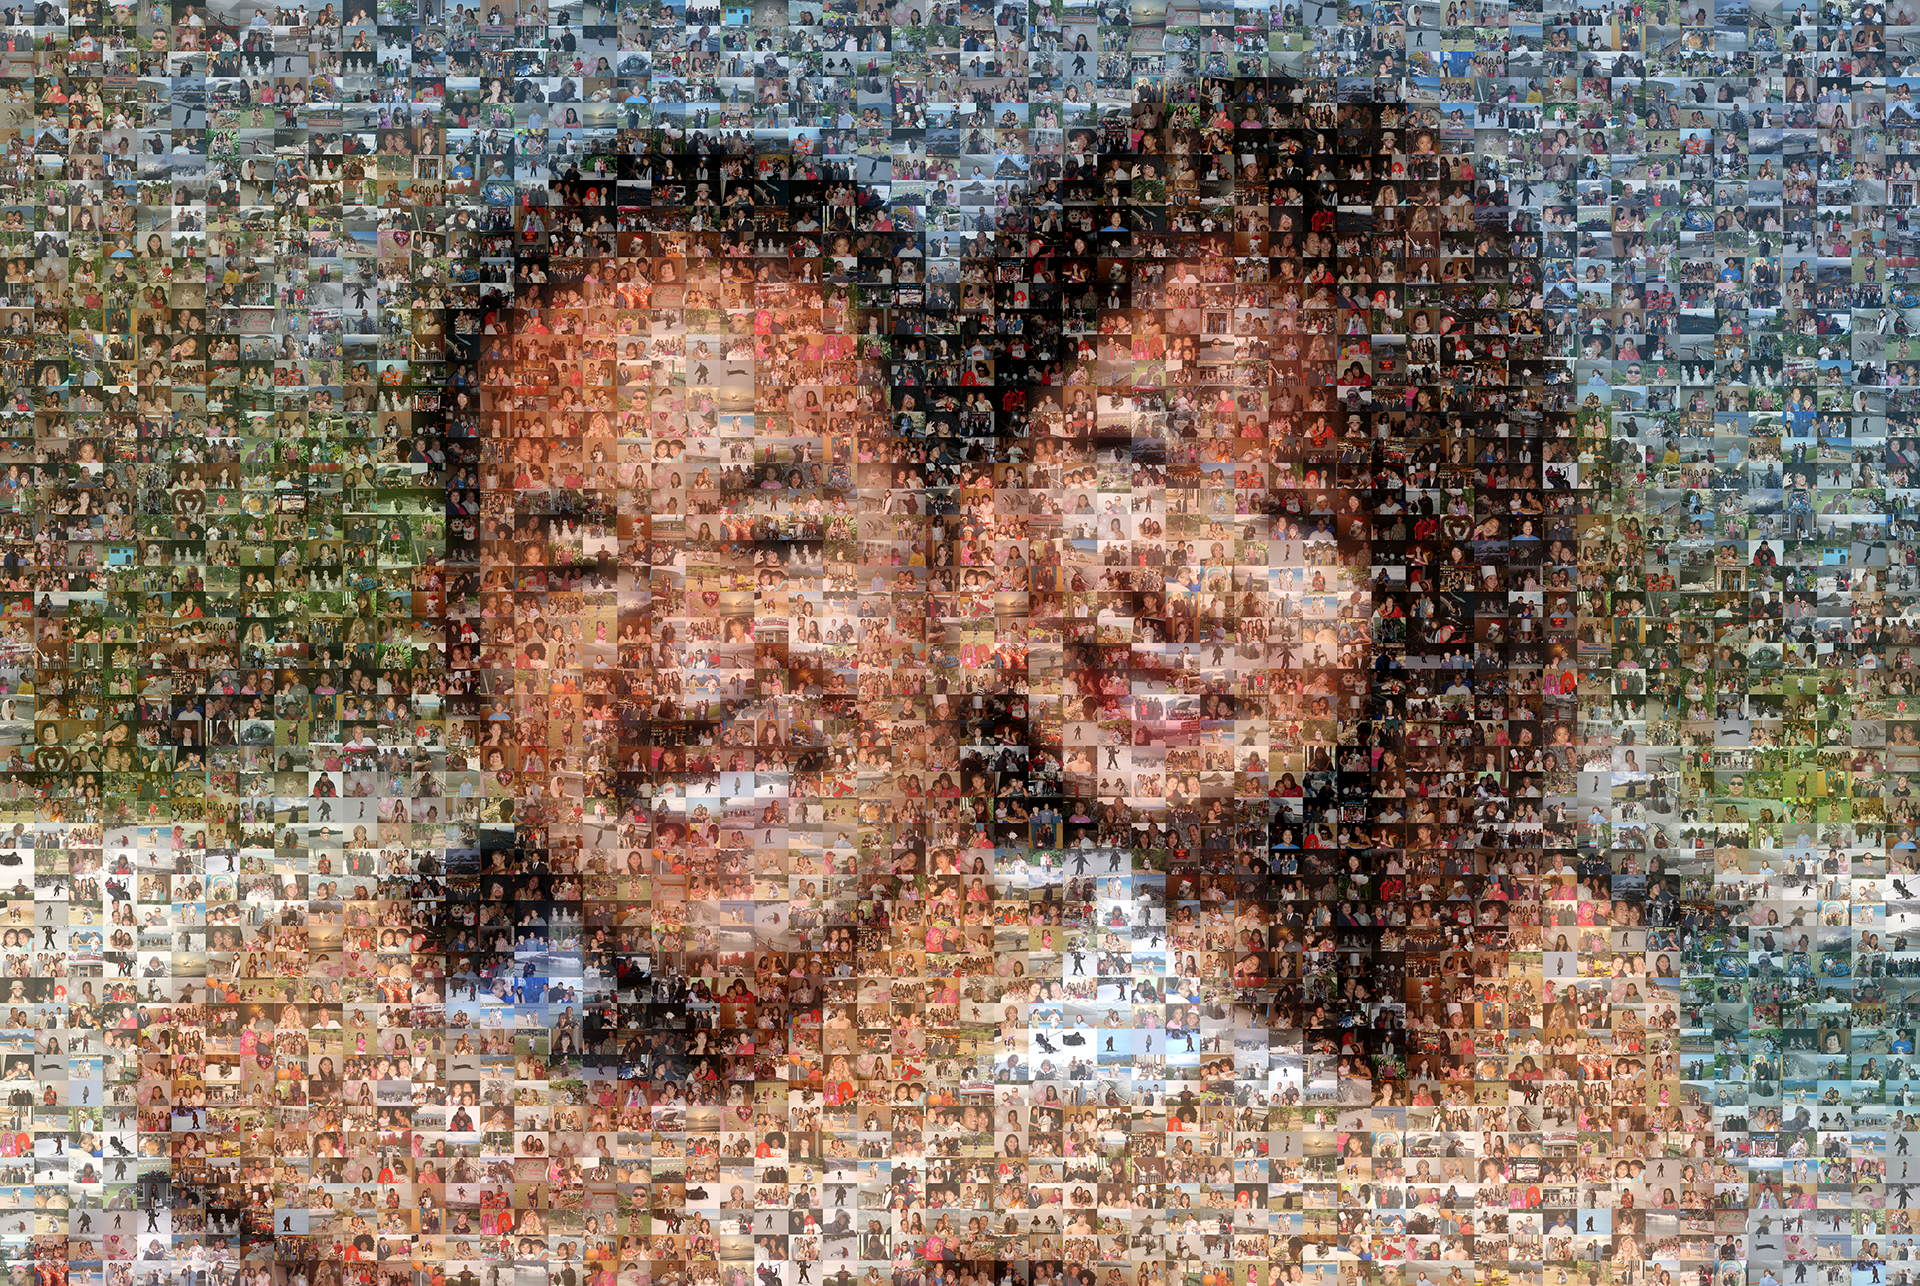 photo mosaic created using 623 user submitted photos